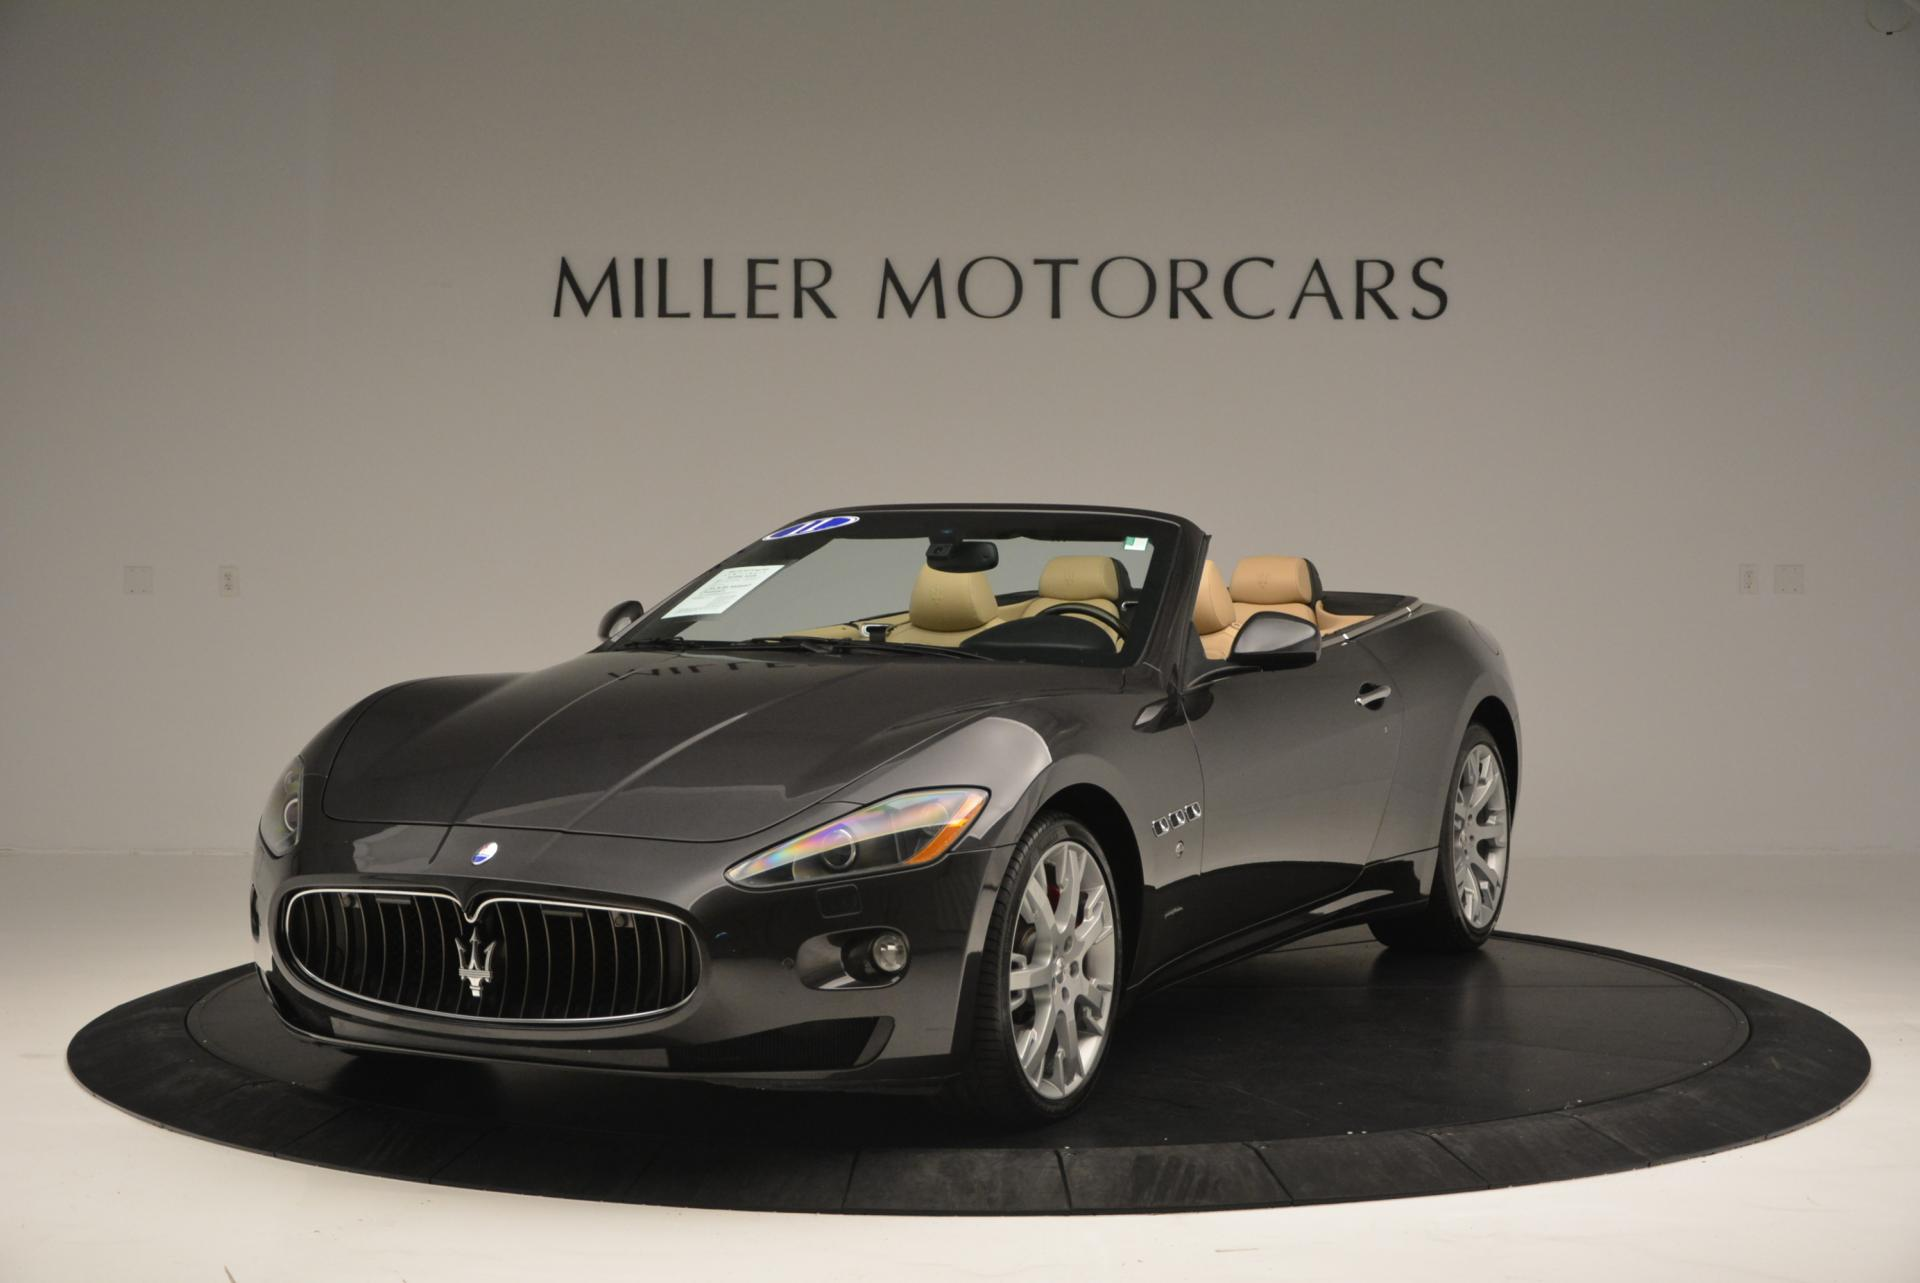 Used 2011 Maserati GranTurismo Base for sale Sold at Alfa Romeo of Greenwich in Greenwich CT 06830 1